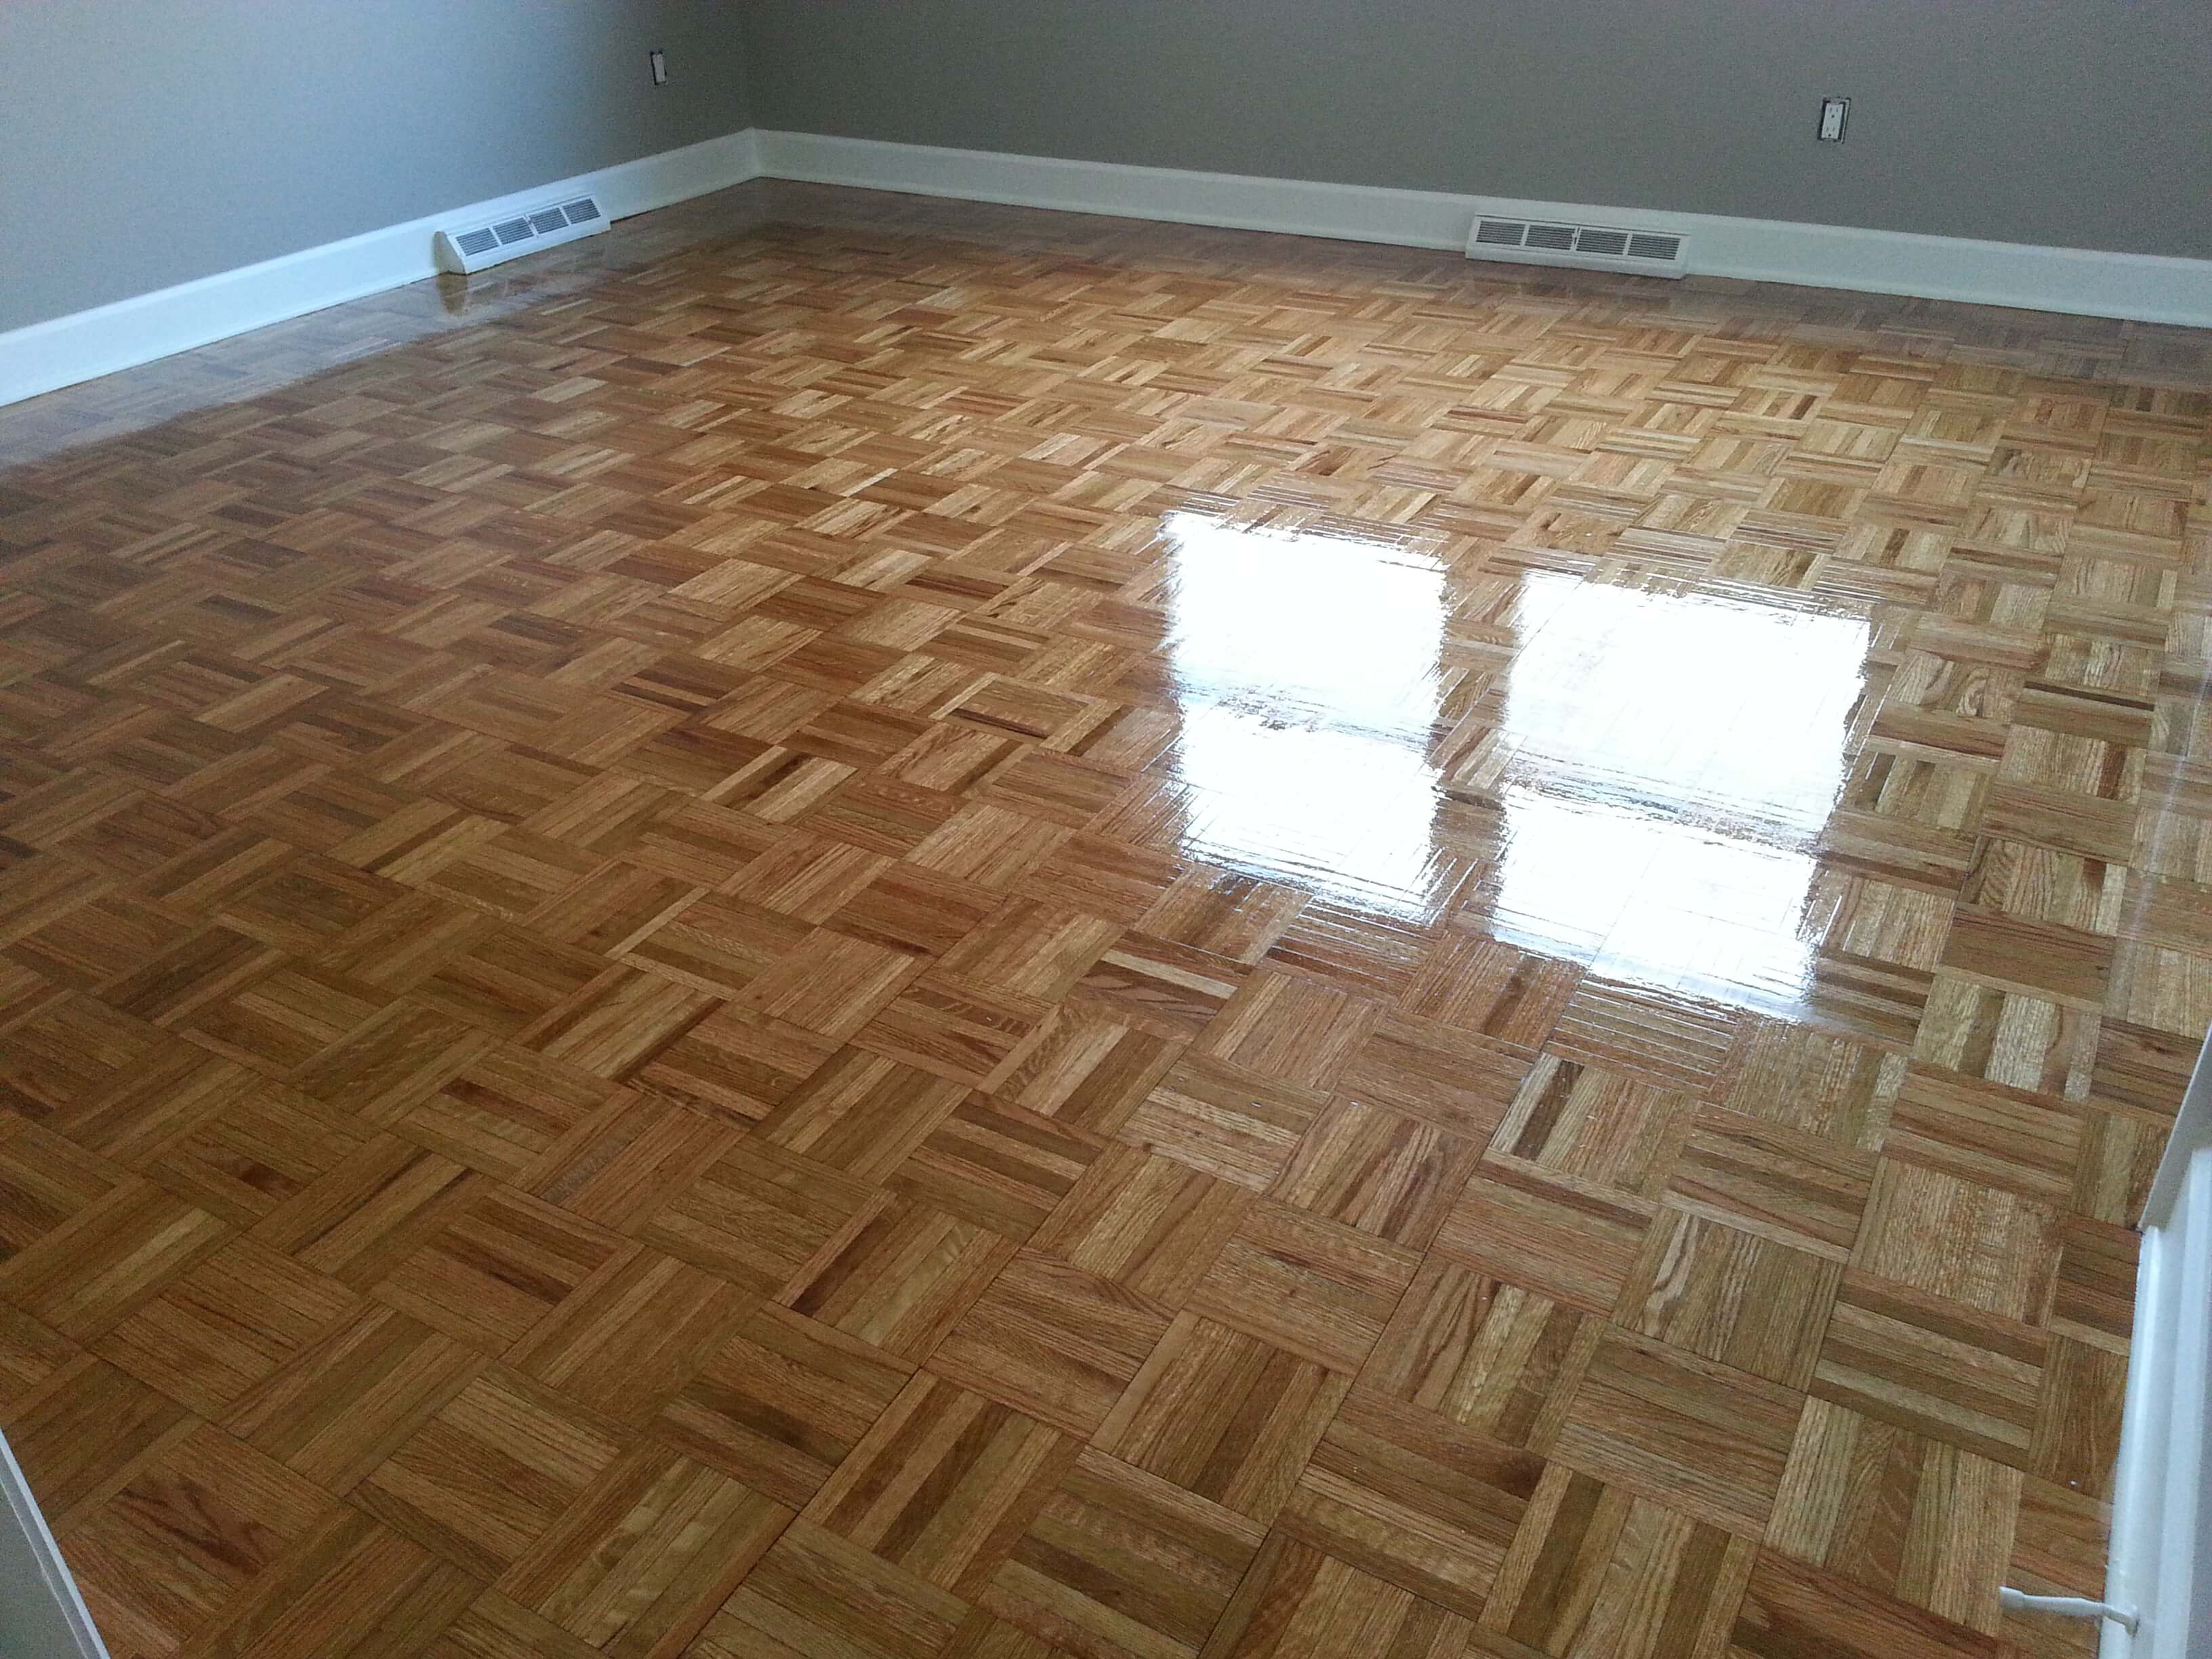 A refinished parquet floor done by Fabulous Floors Michigan